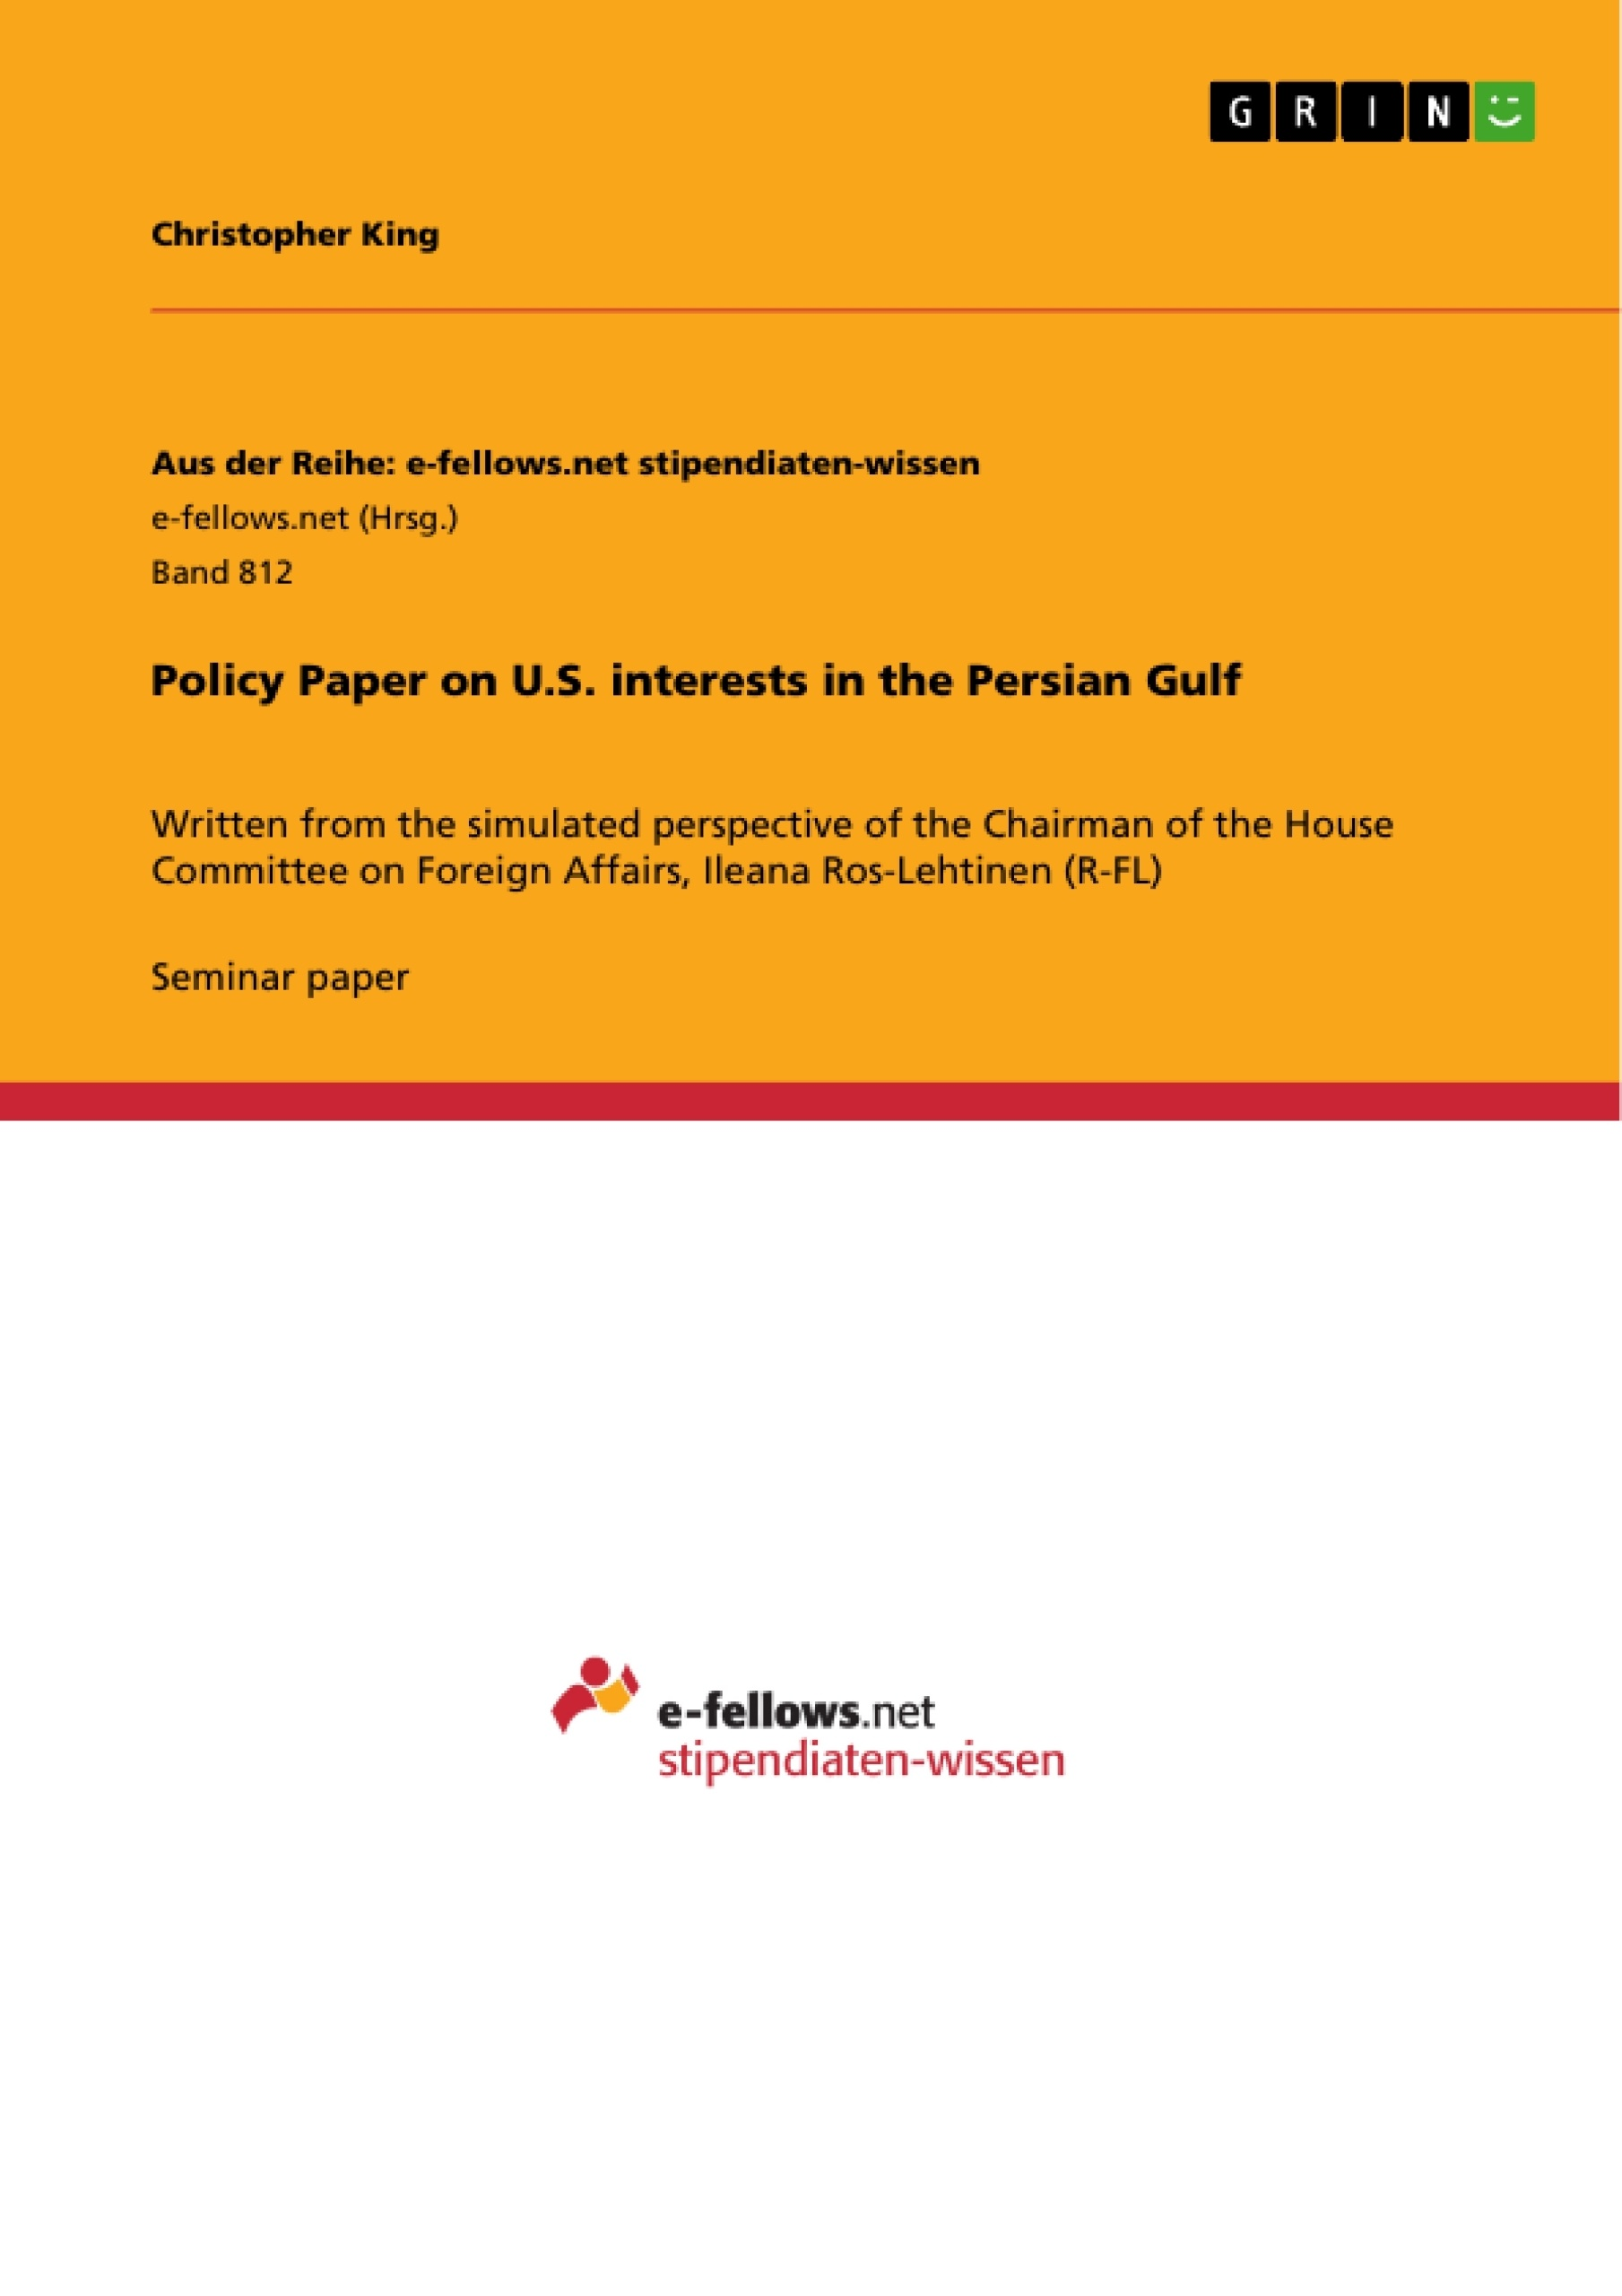 Title: Policy Paper on U.S. interests in the Persian Gulf